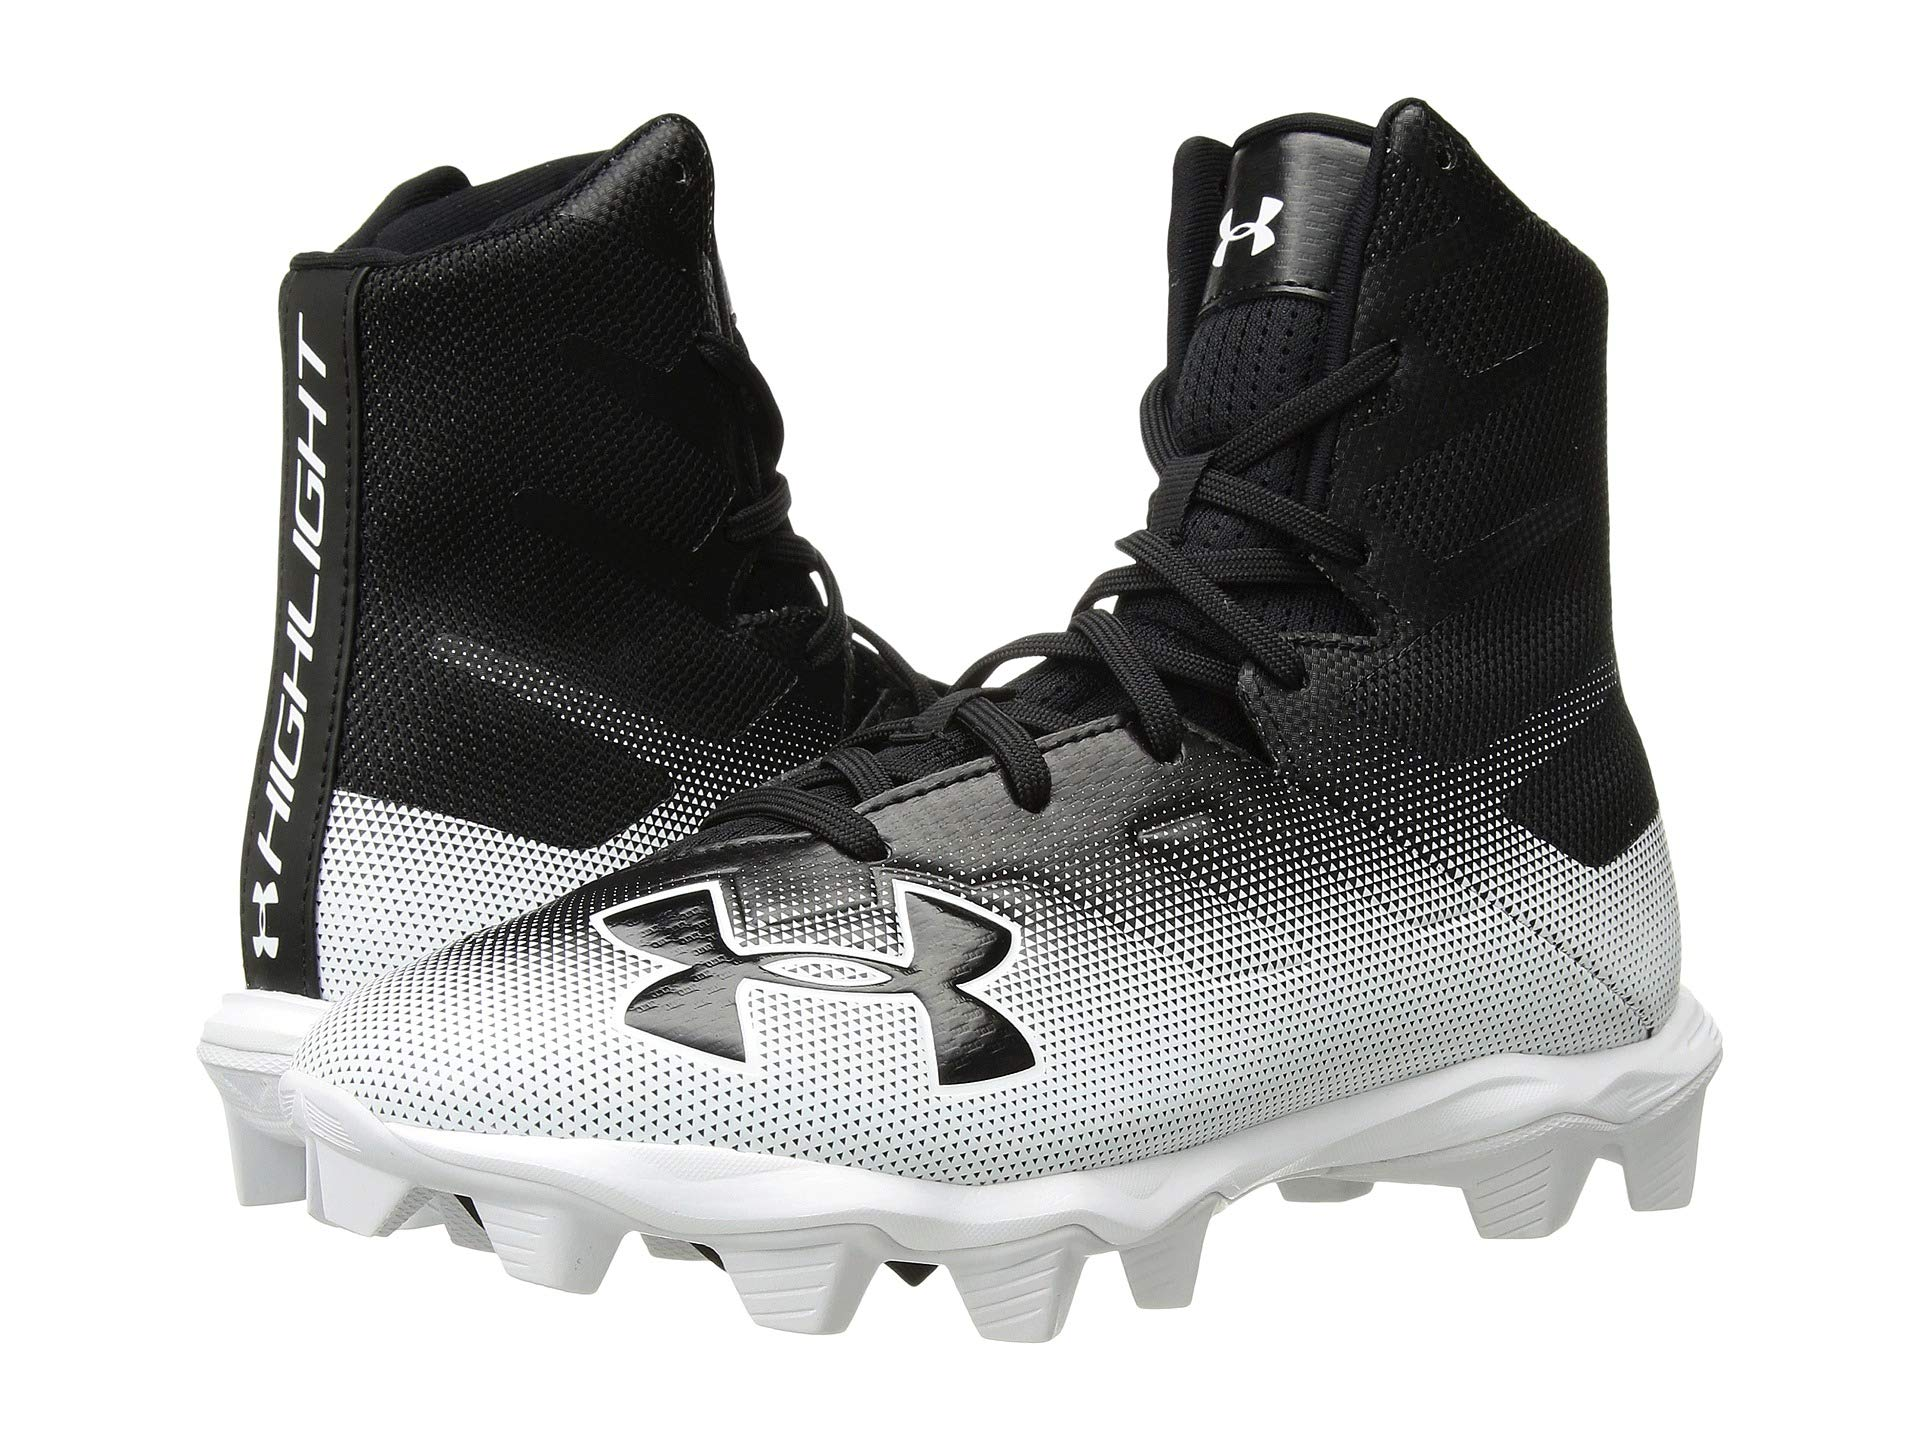 0b4061b5753 Under Armour Kids UA Highlight RM LE Football (Little Kid Big Kid) – Yashry